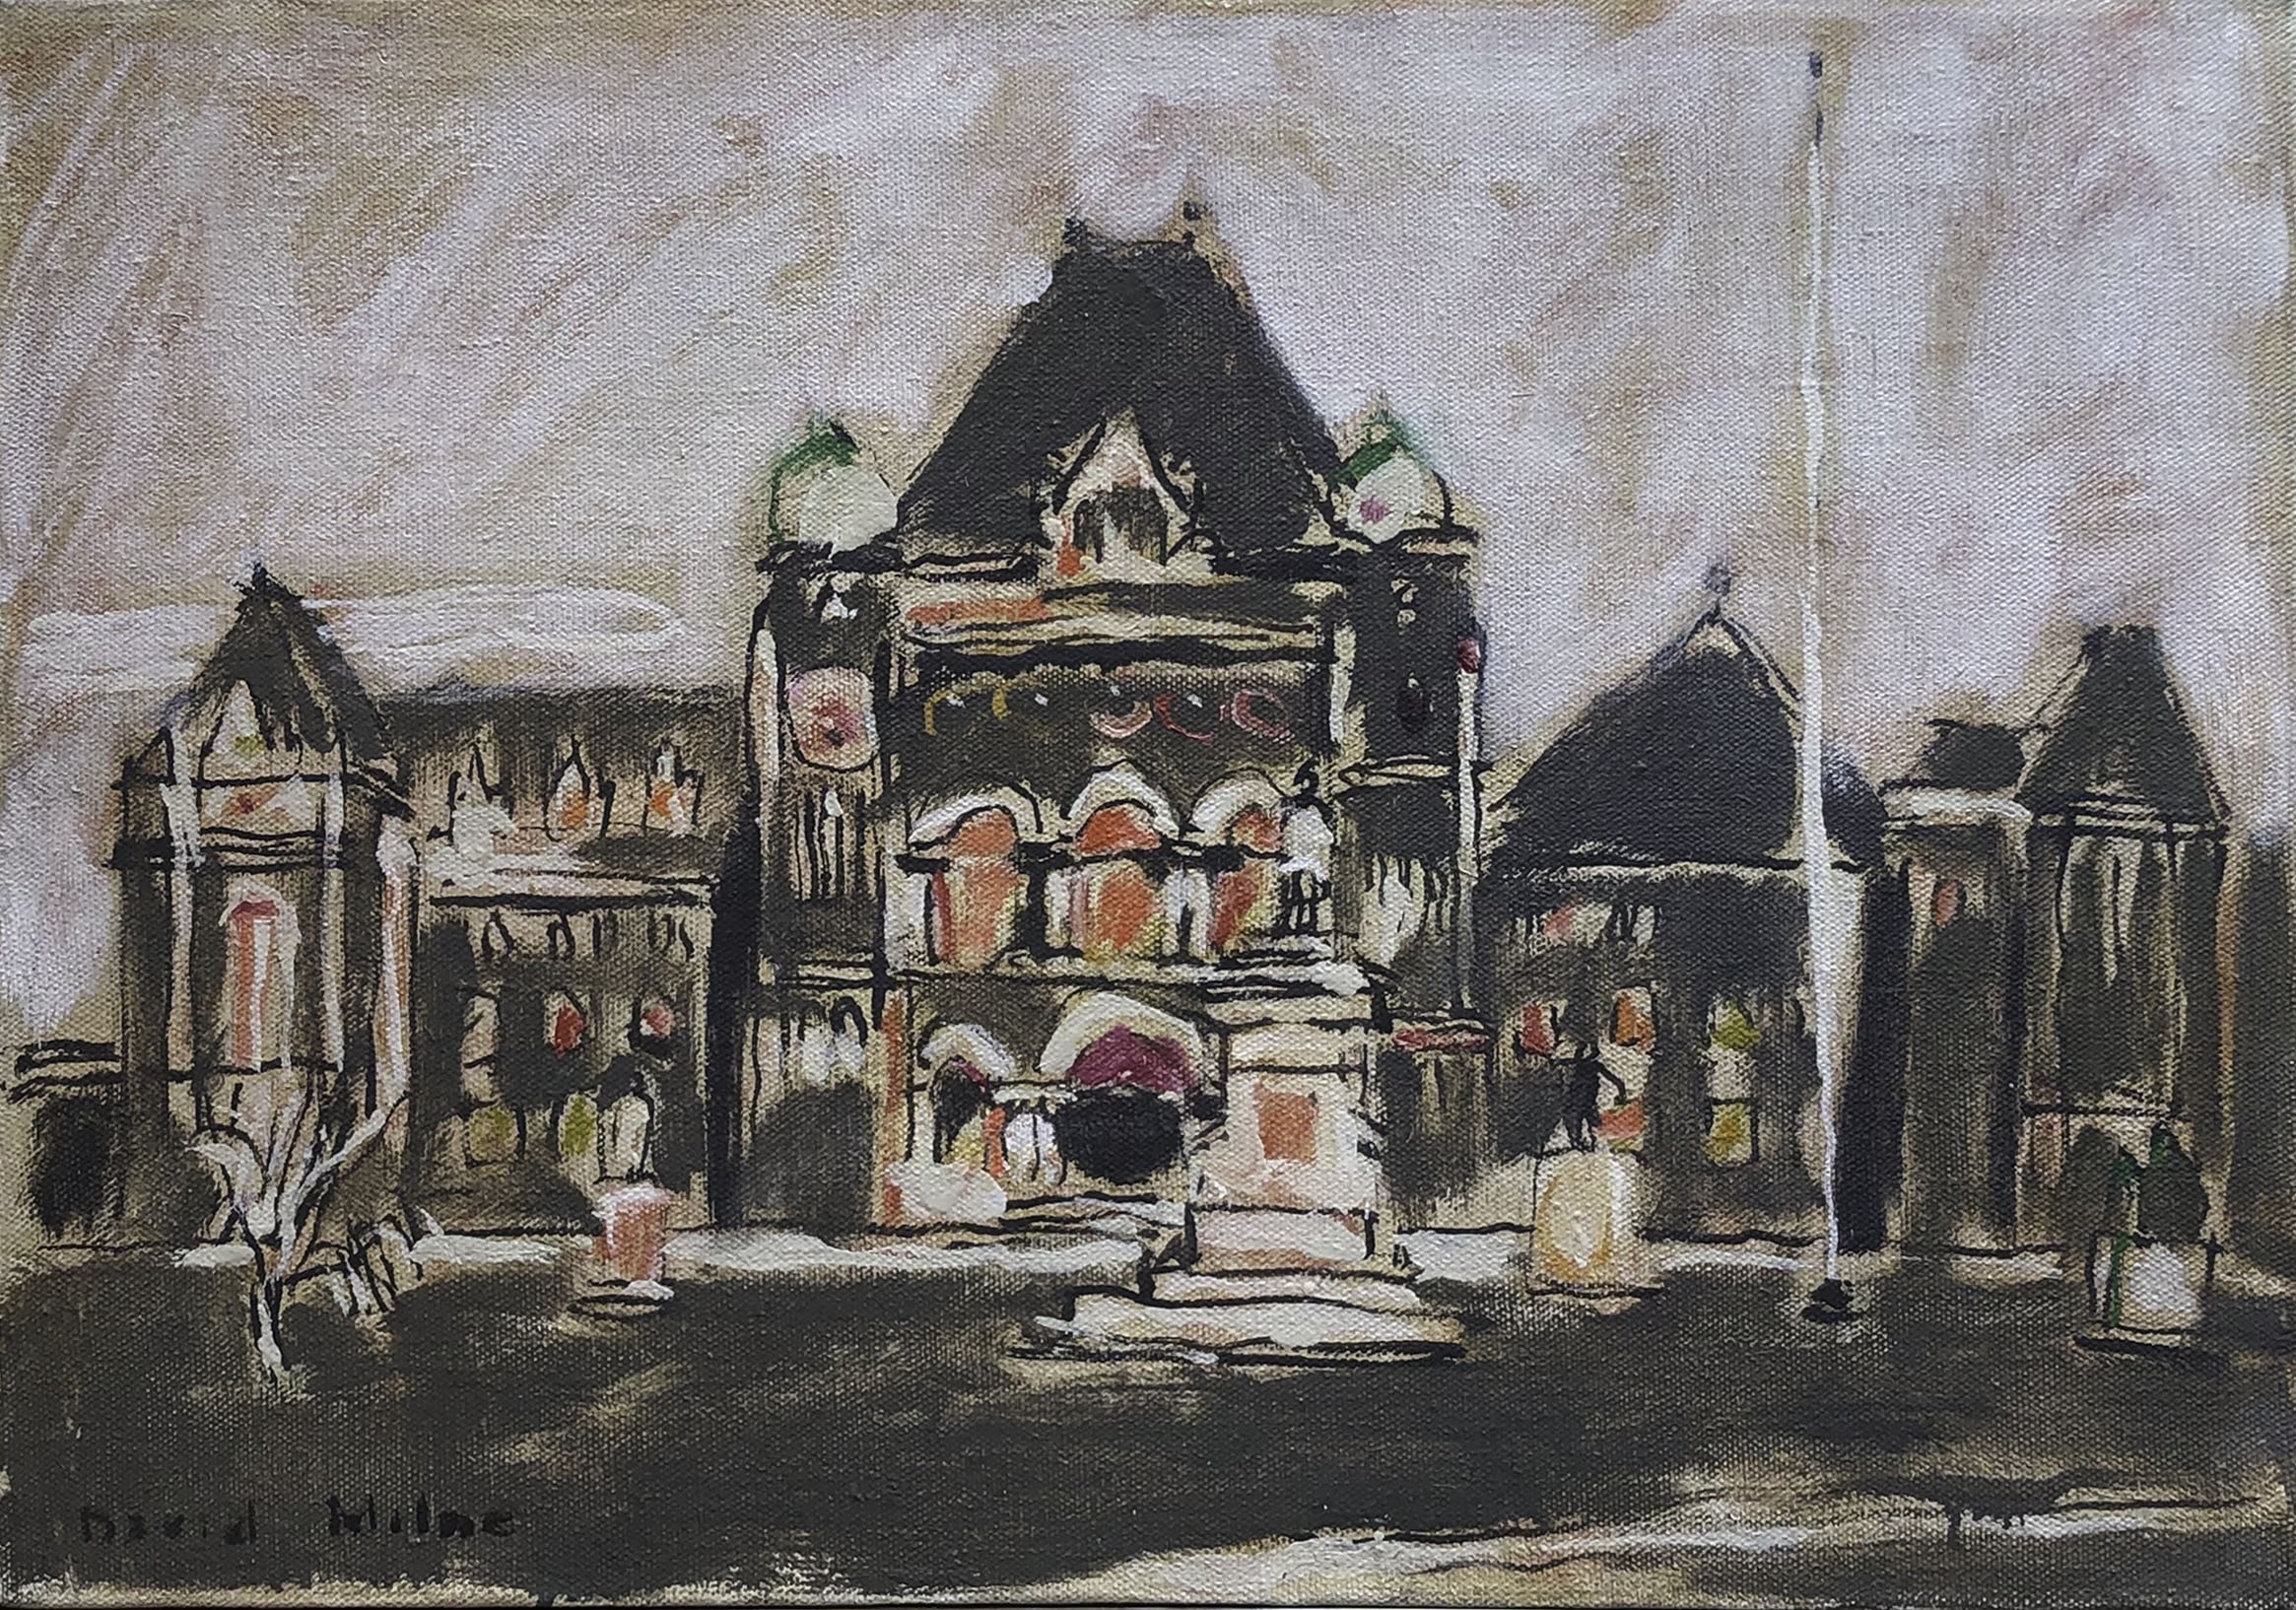 David Milne, Parliament Buildings at Queen's Park, 1940